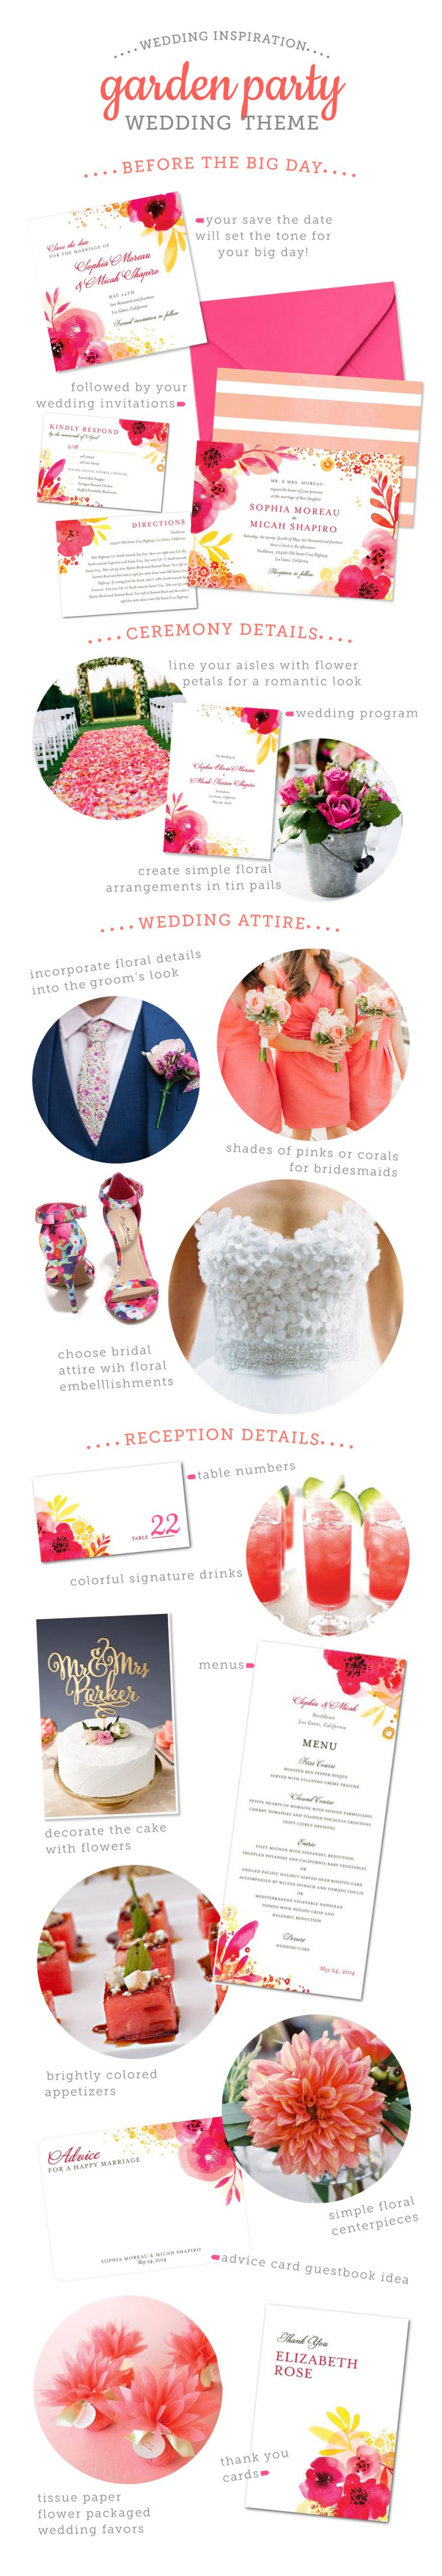 Creating a cohesive theme through your wedding stationery   The Budget Savvy Bride